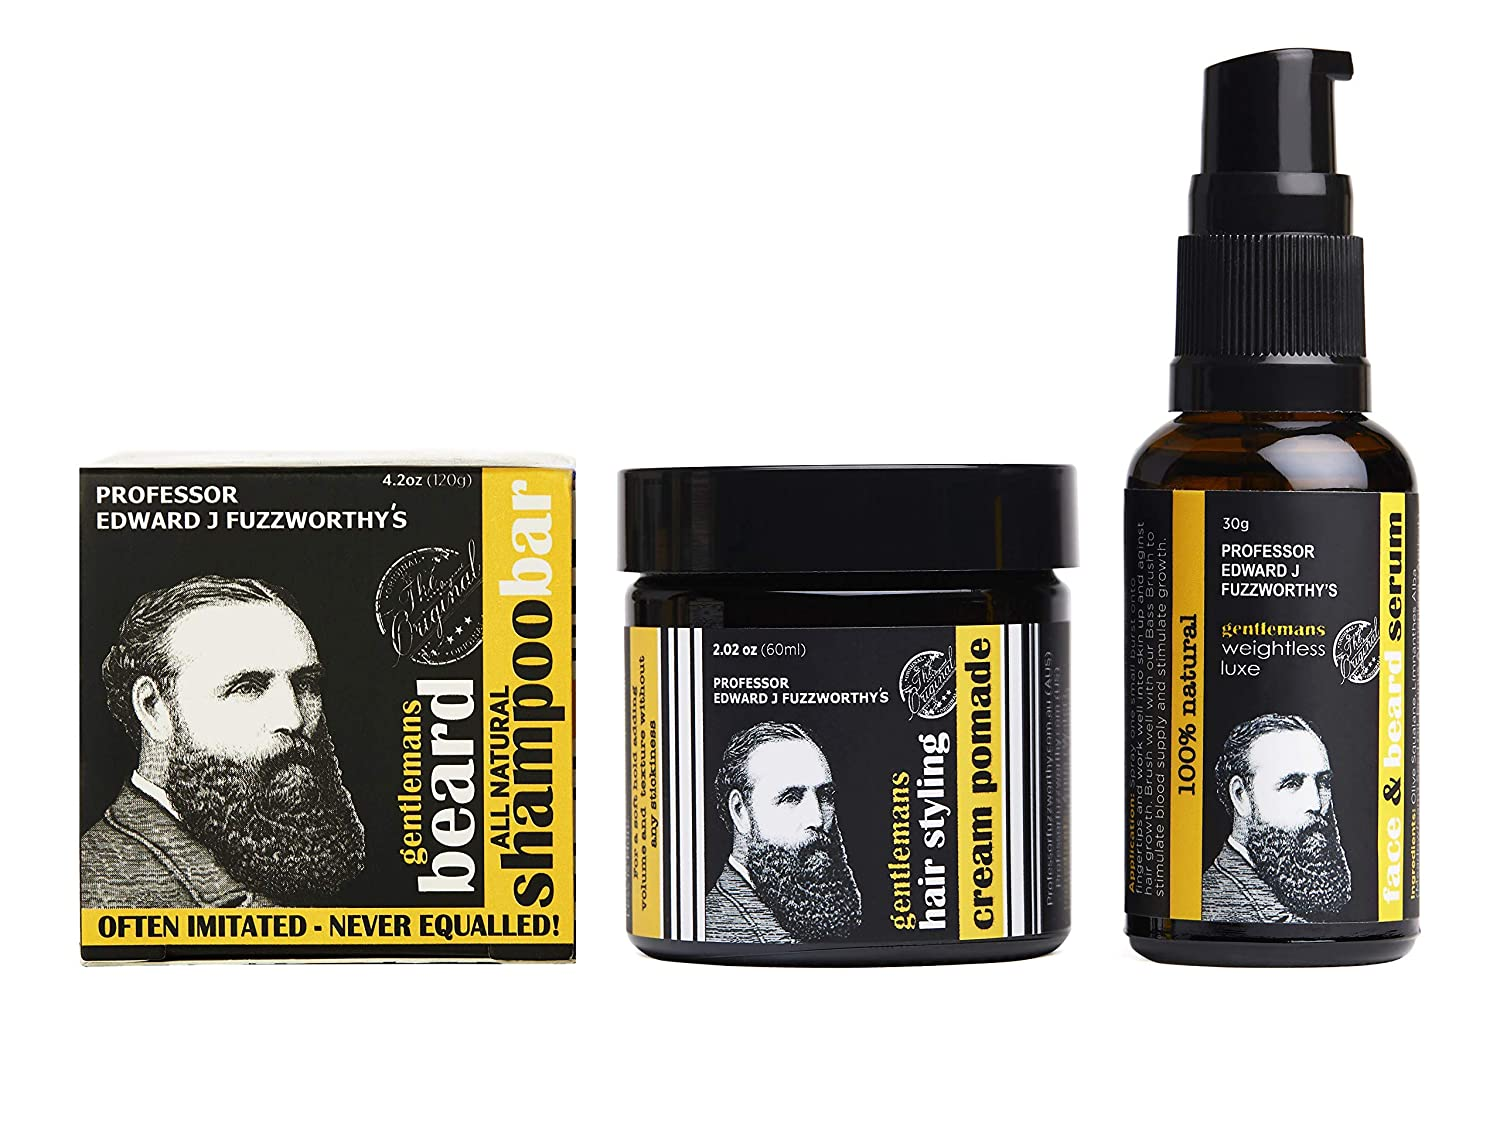 Limited Edition Professor Fuzzworthy Grooming NEW Products Gift Set | Beard SHAMPOO, Face & Beard Oil Serum & Gentlemans Beard & Hair Styling Cream Pomade | 100% Natural Essential Oils & Ingredients